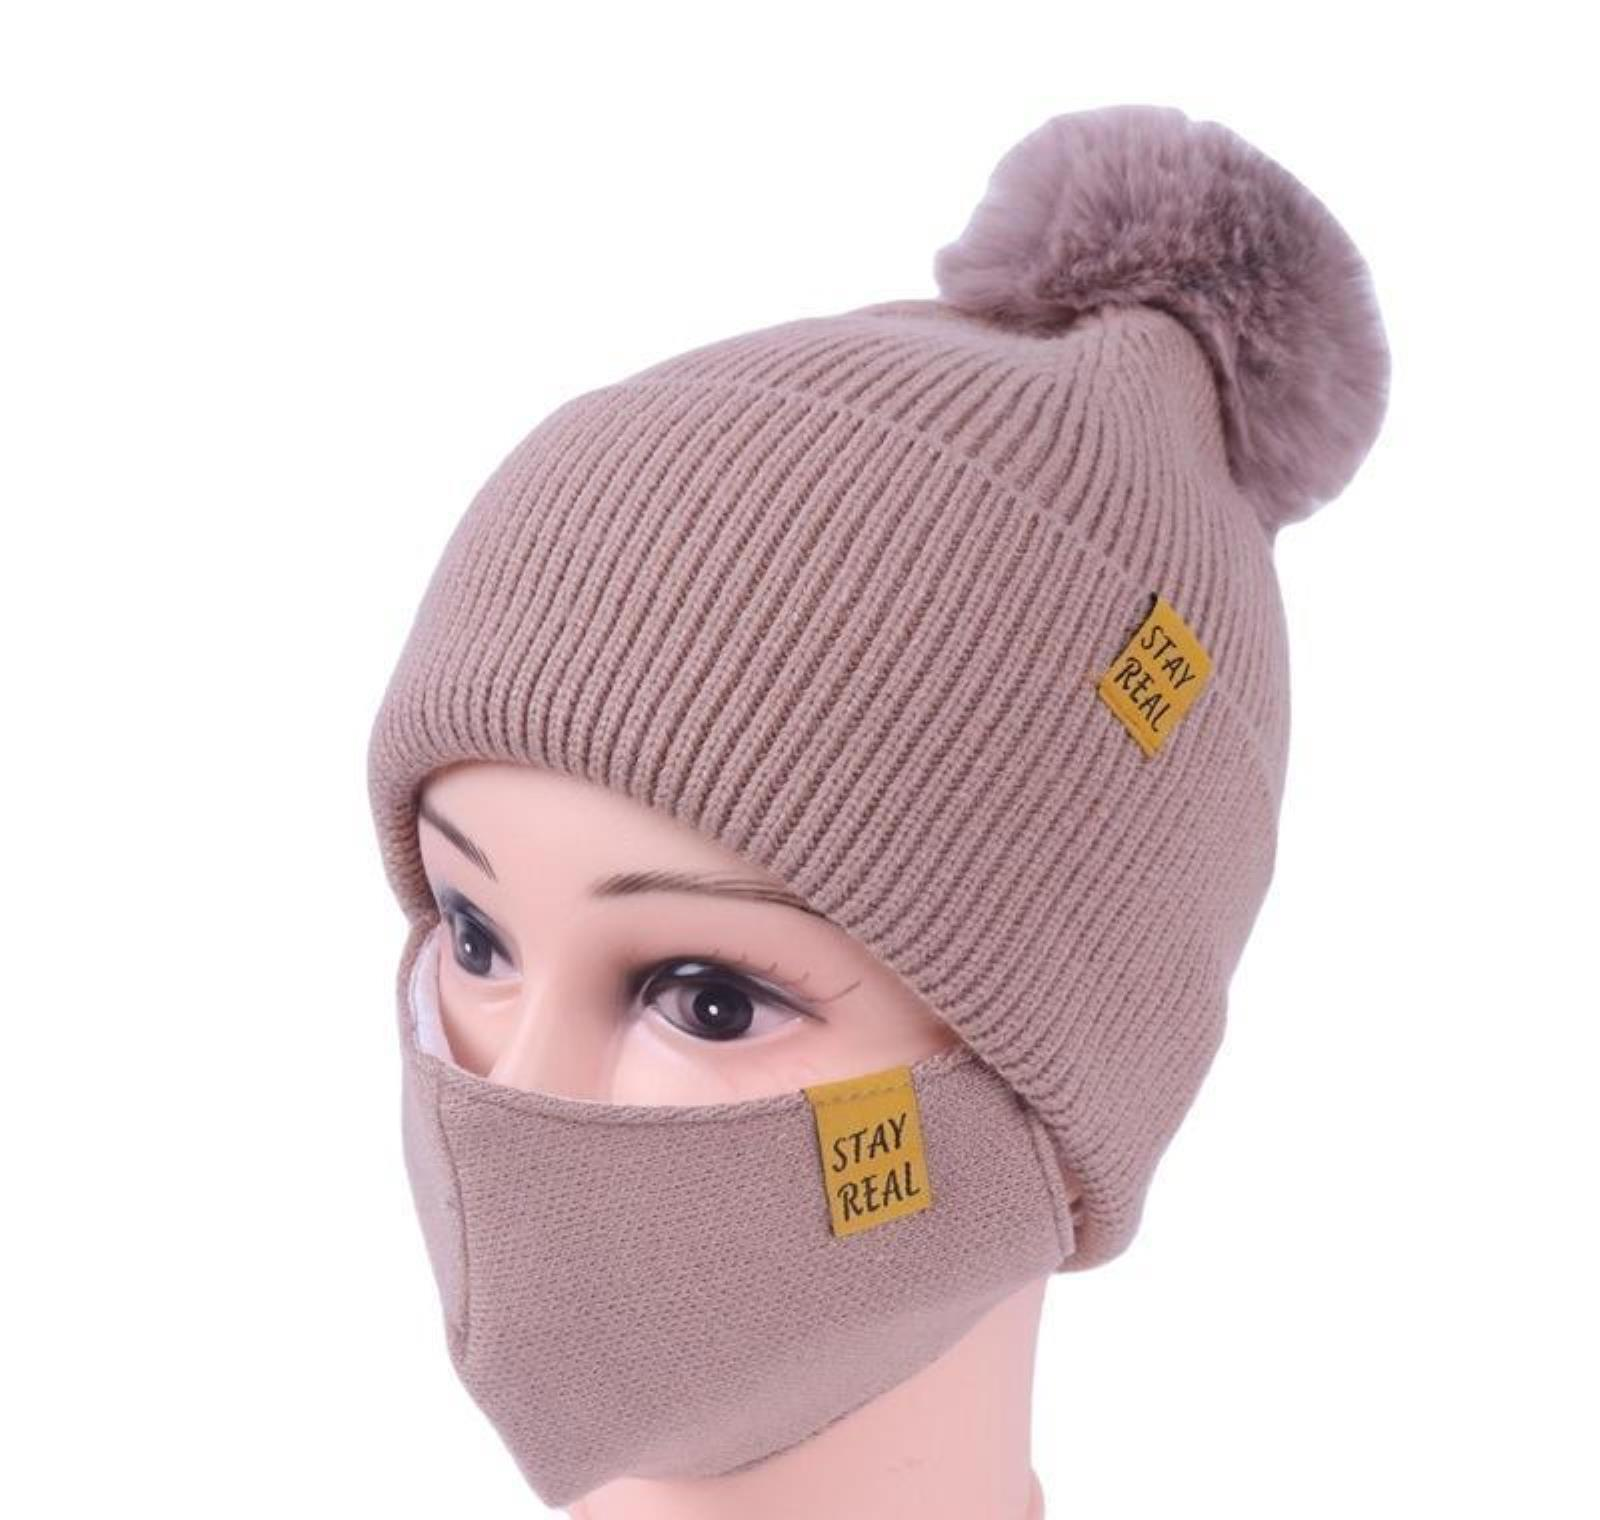 Dhl Shipping Womens Girls Knit Beanie Cap With Face Mask Set Soft Warm Lined Winter Ski Pompom Hat Outdoor Cyc bbyeCx soif